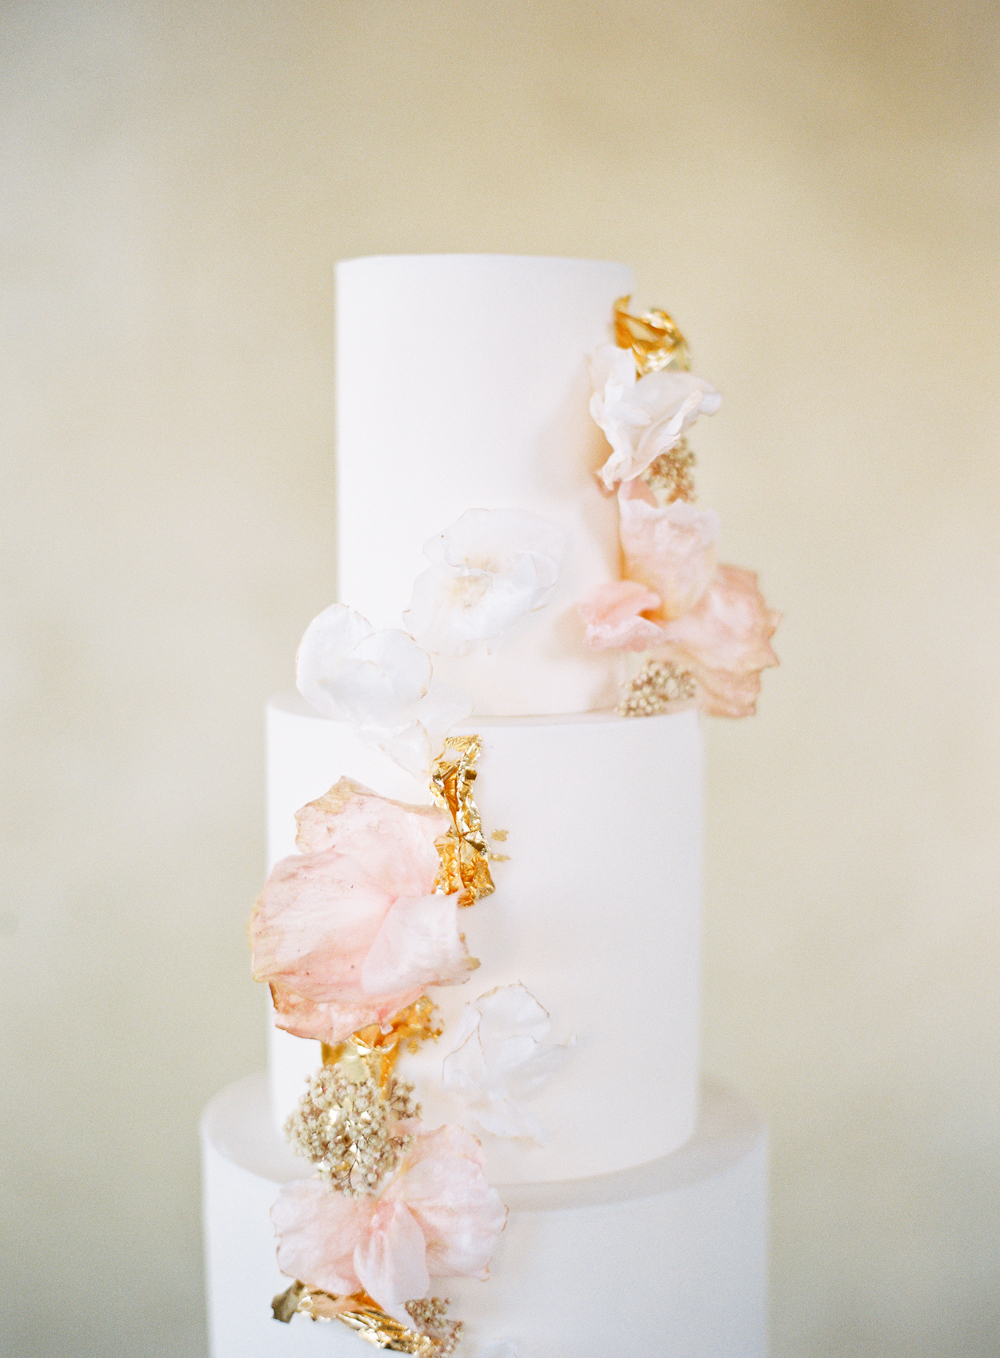 Modern white wedding cake with blush wafer paper flowers by Hey There Cupcake | Luxury wedding | Hidden Castle | Rancho Santa Fe | Estate Events with Venuelust | neutral wedding | European Wedding Inspiration | French wedding | France wedding photographer | Southern California film photographer | San Diego wedding photographer | Whiskers and Willow Photography